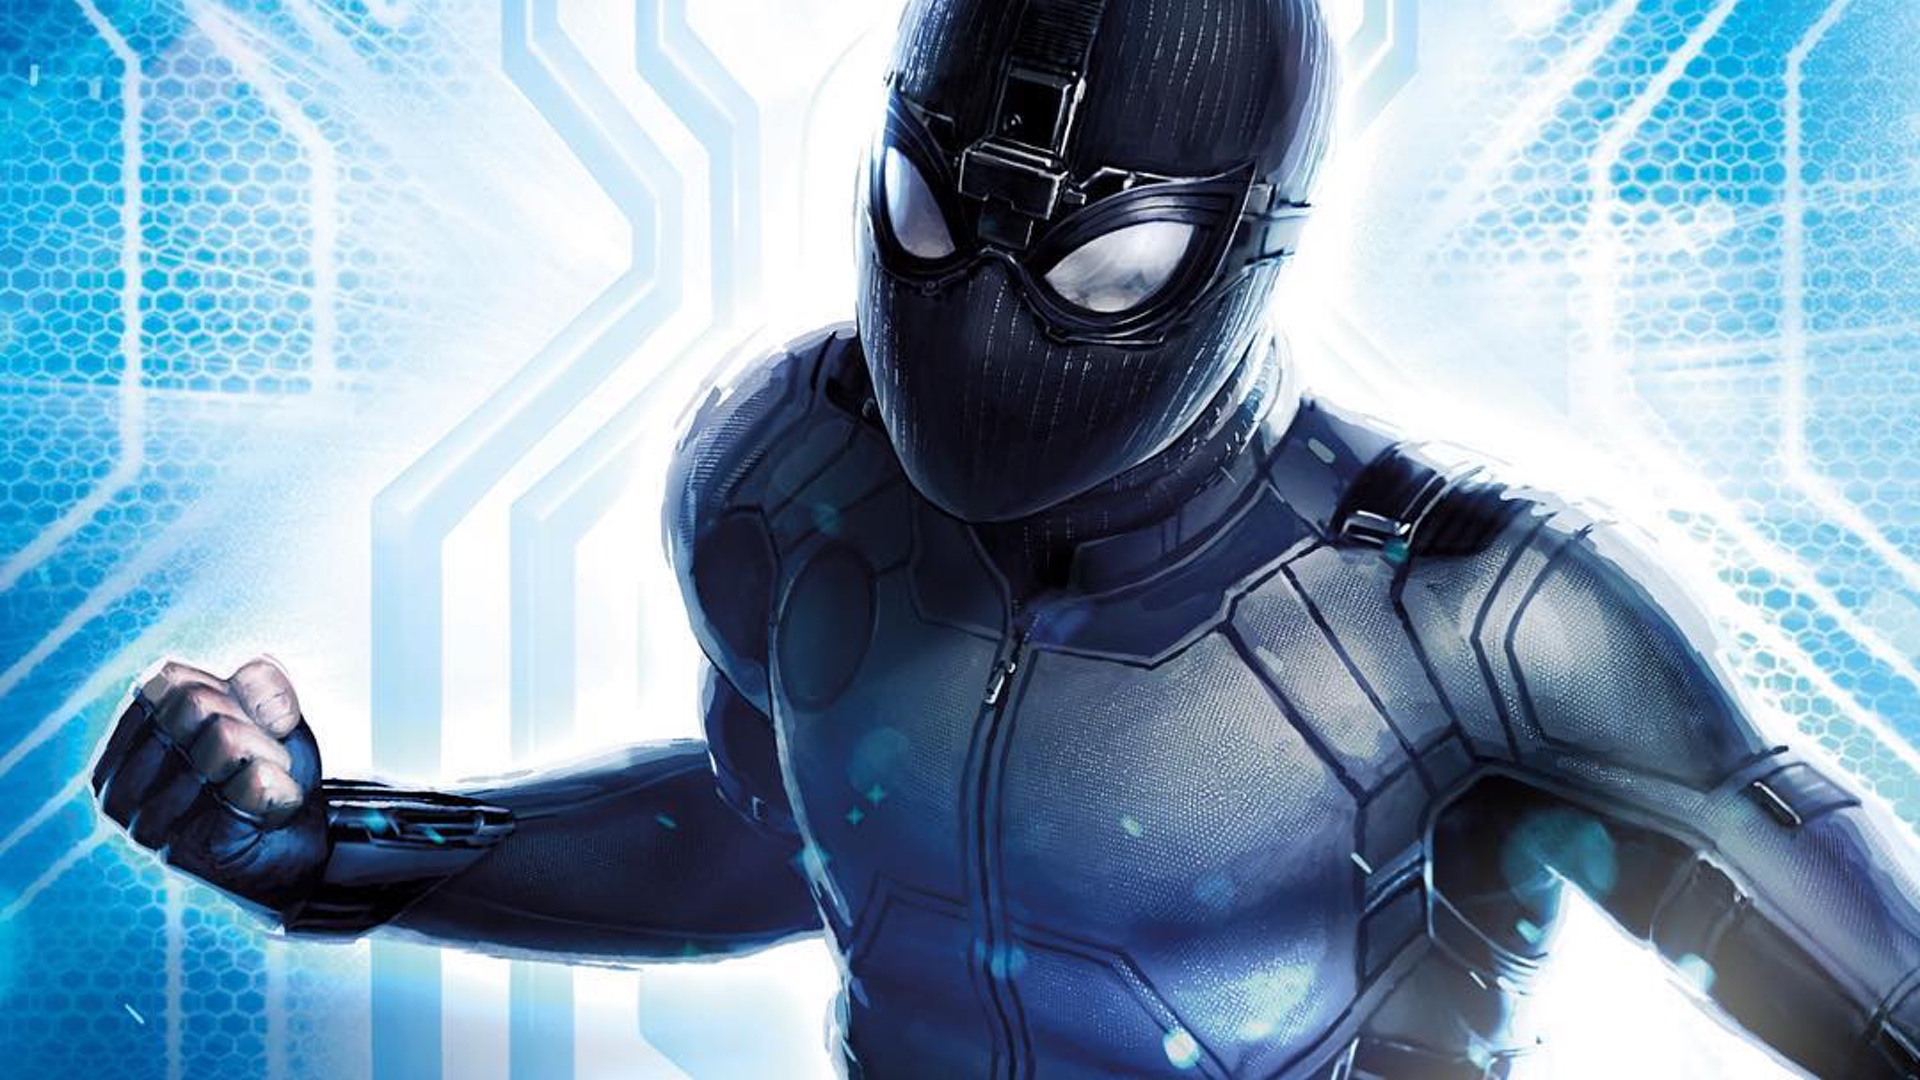 new-promo-art-for-spider-man-far-from-home-features-our-best-look-yet-at-spideys-black-suit-social.jpg